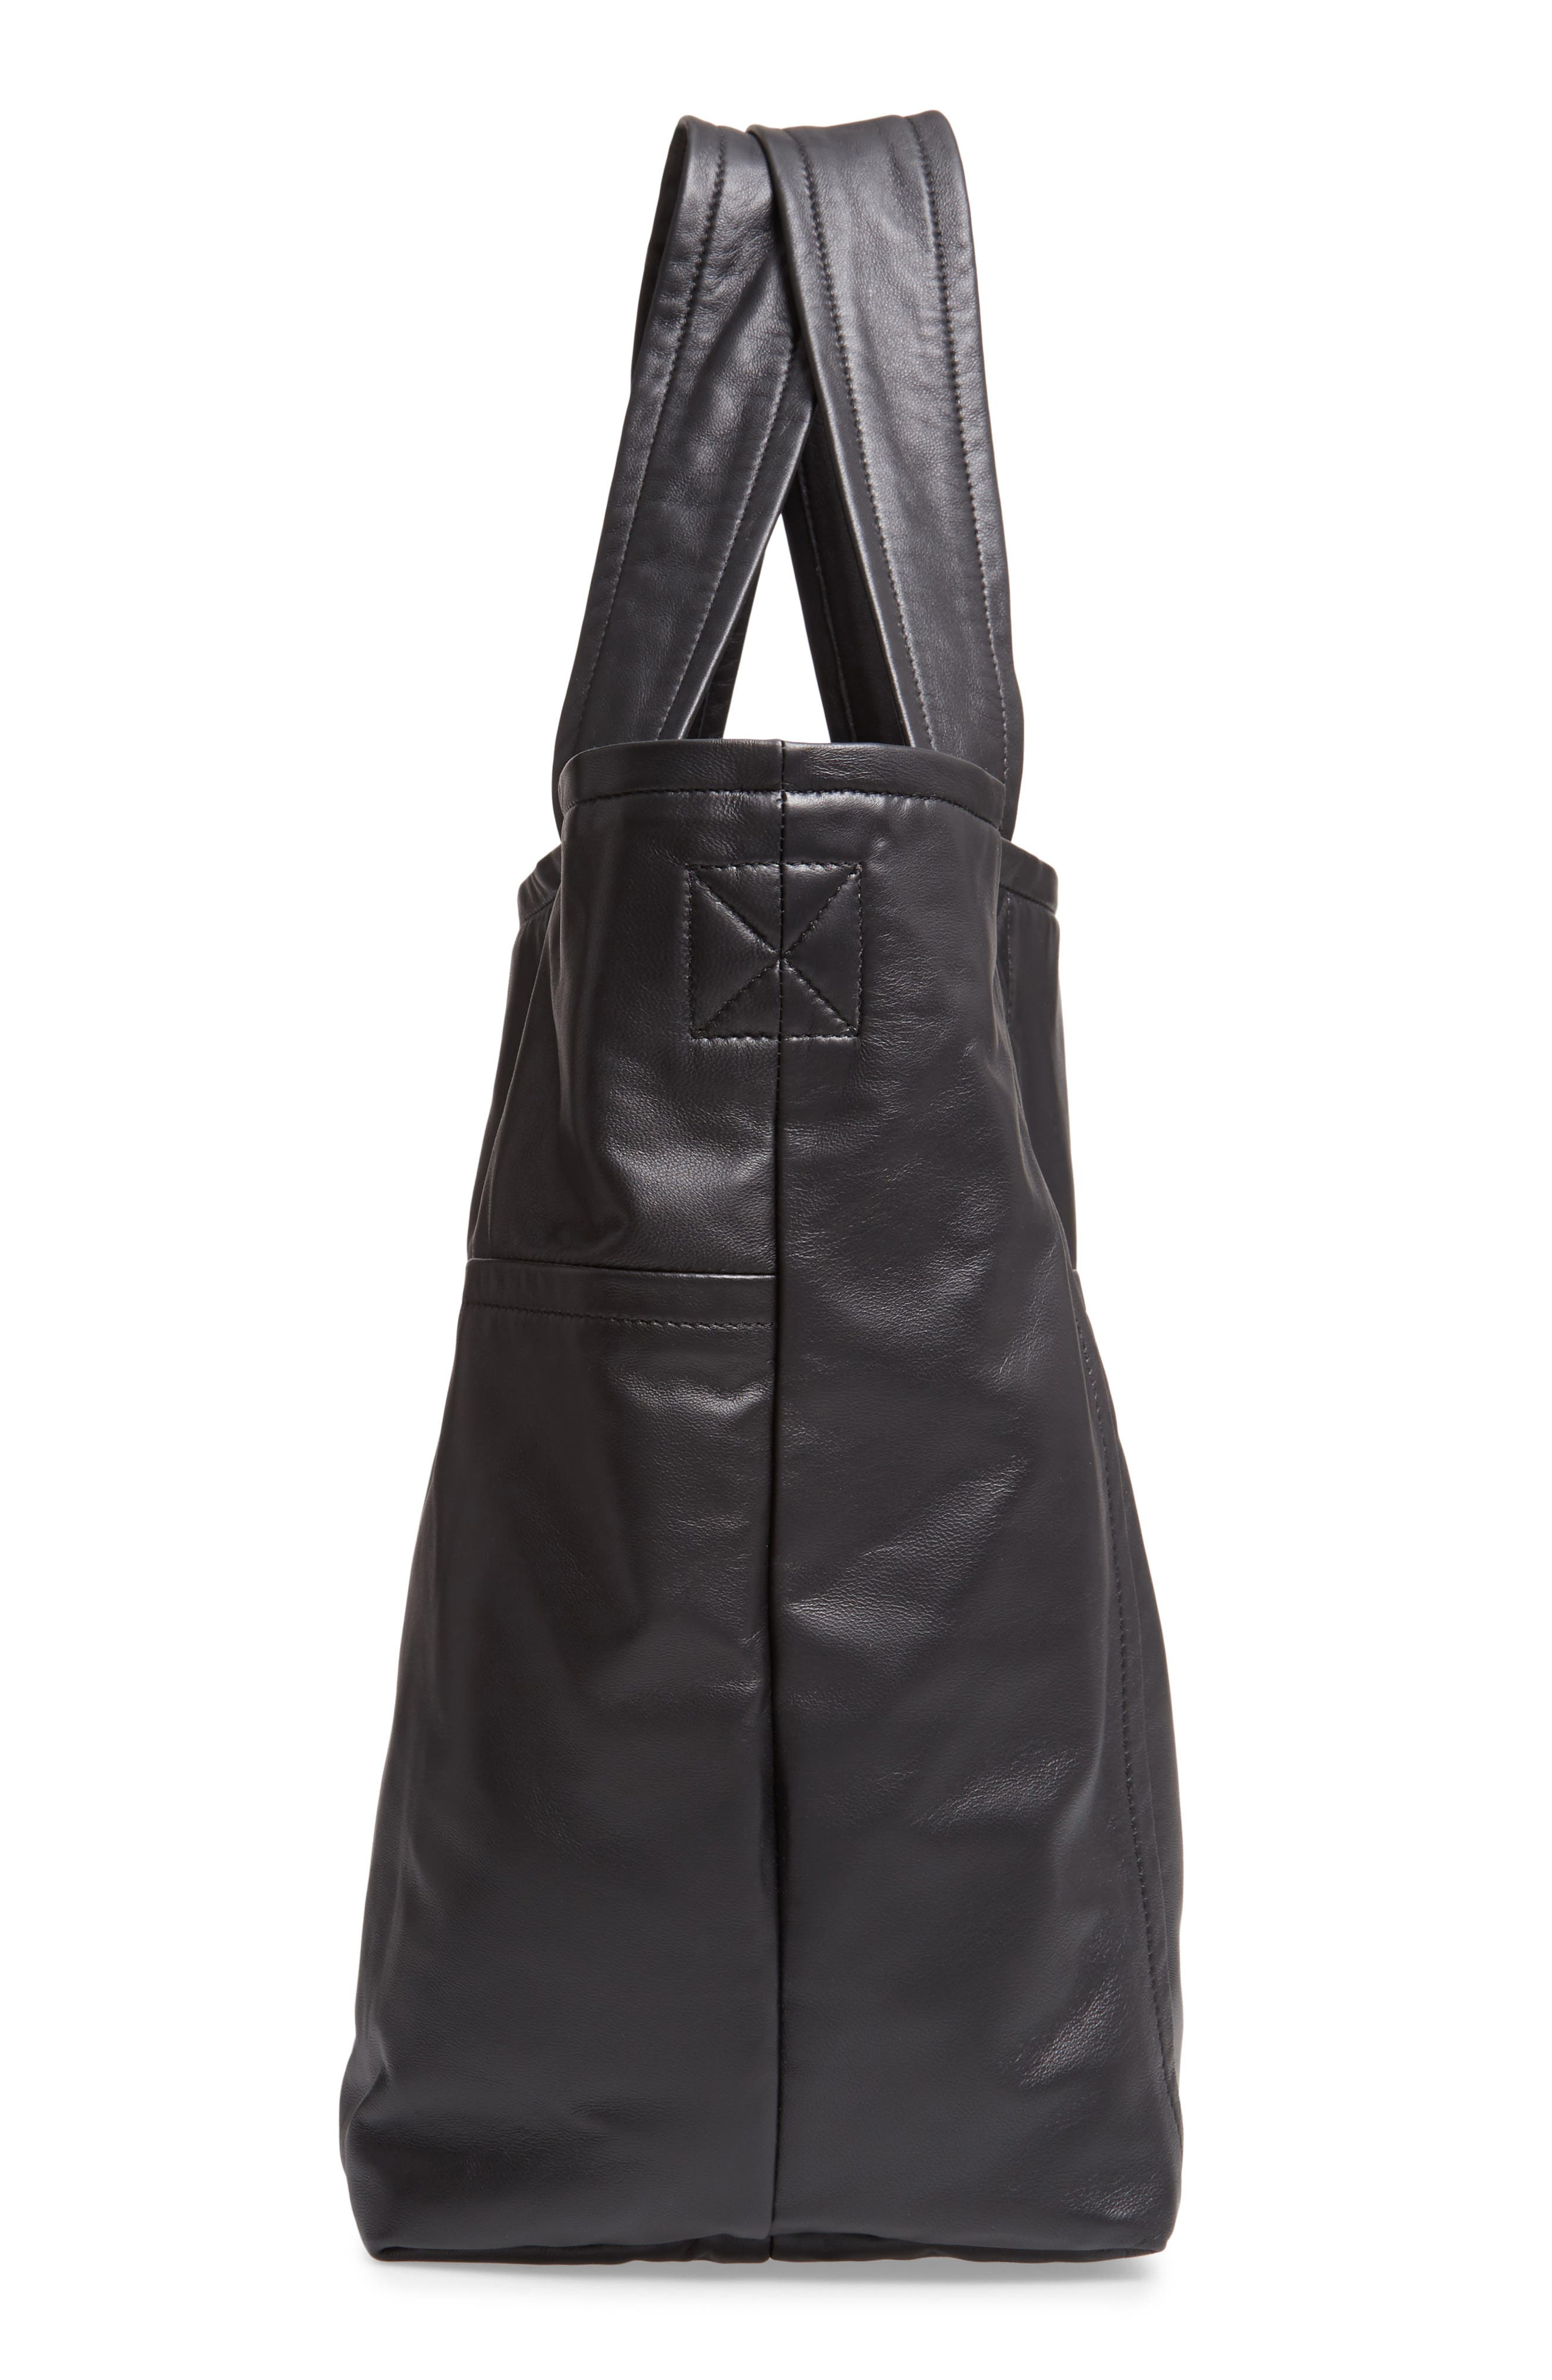 VICTORIA BECKHAM, Sunday Leather Tote Bag, Alternate thumbnail 5, color, 001